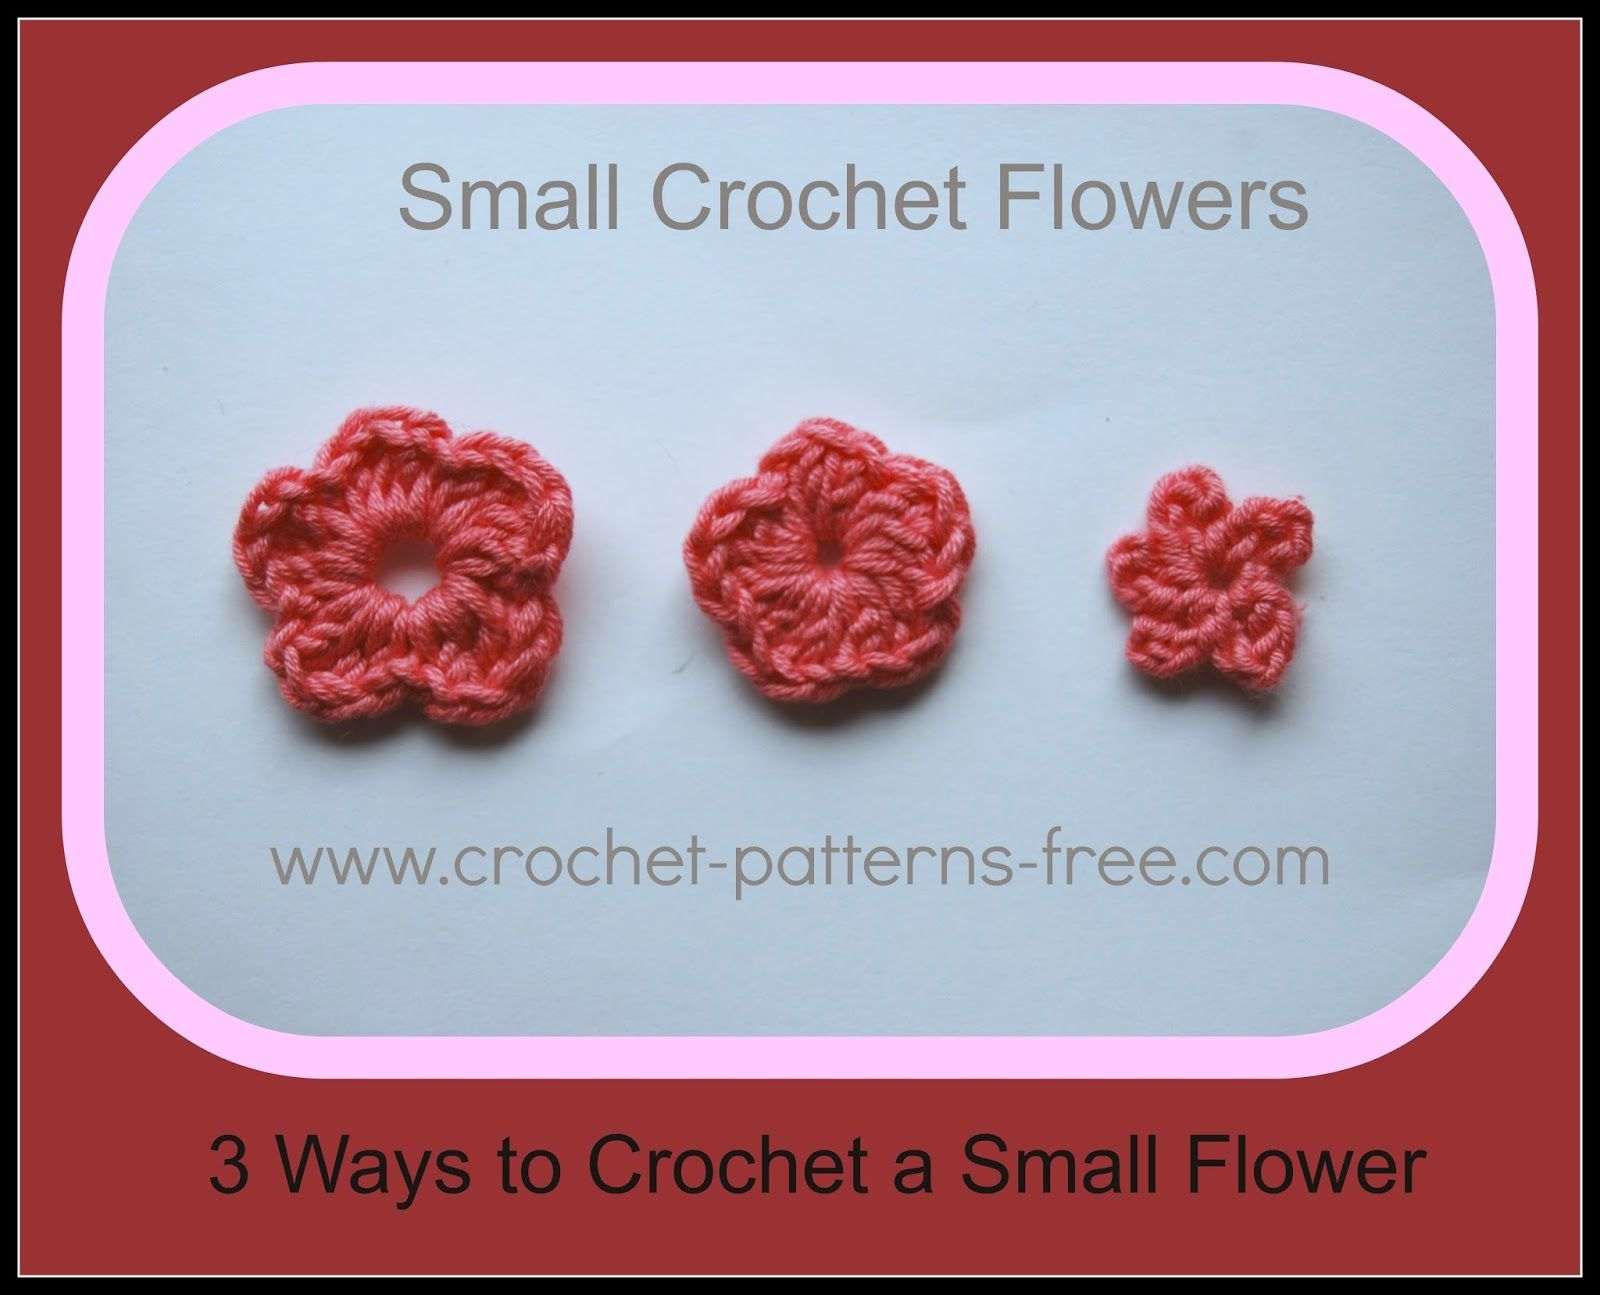 Small Crochet Flower Patterns (Free Crochet Patterns) | Crochet ...